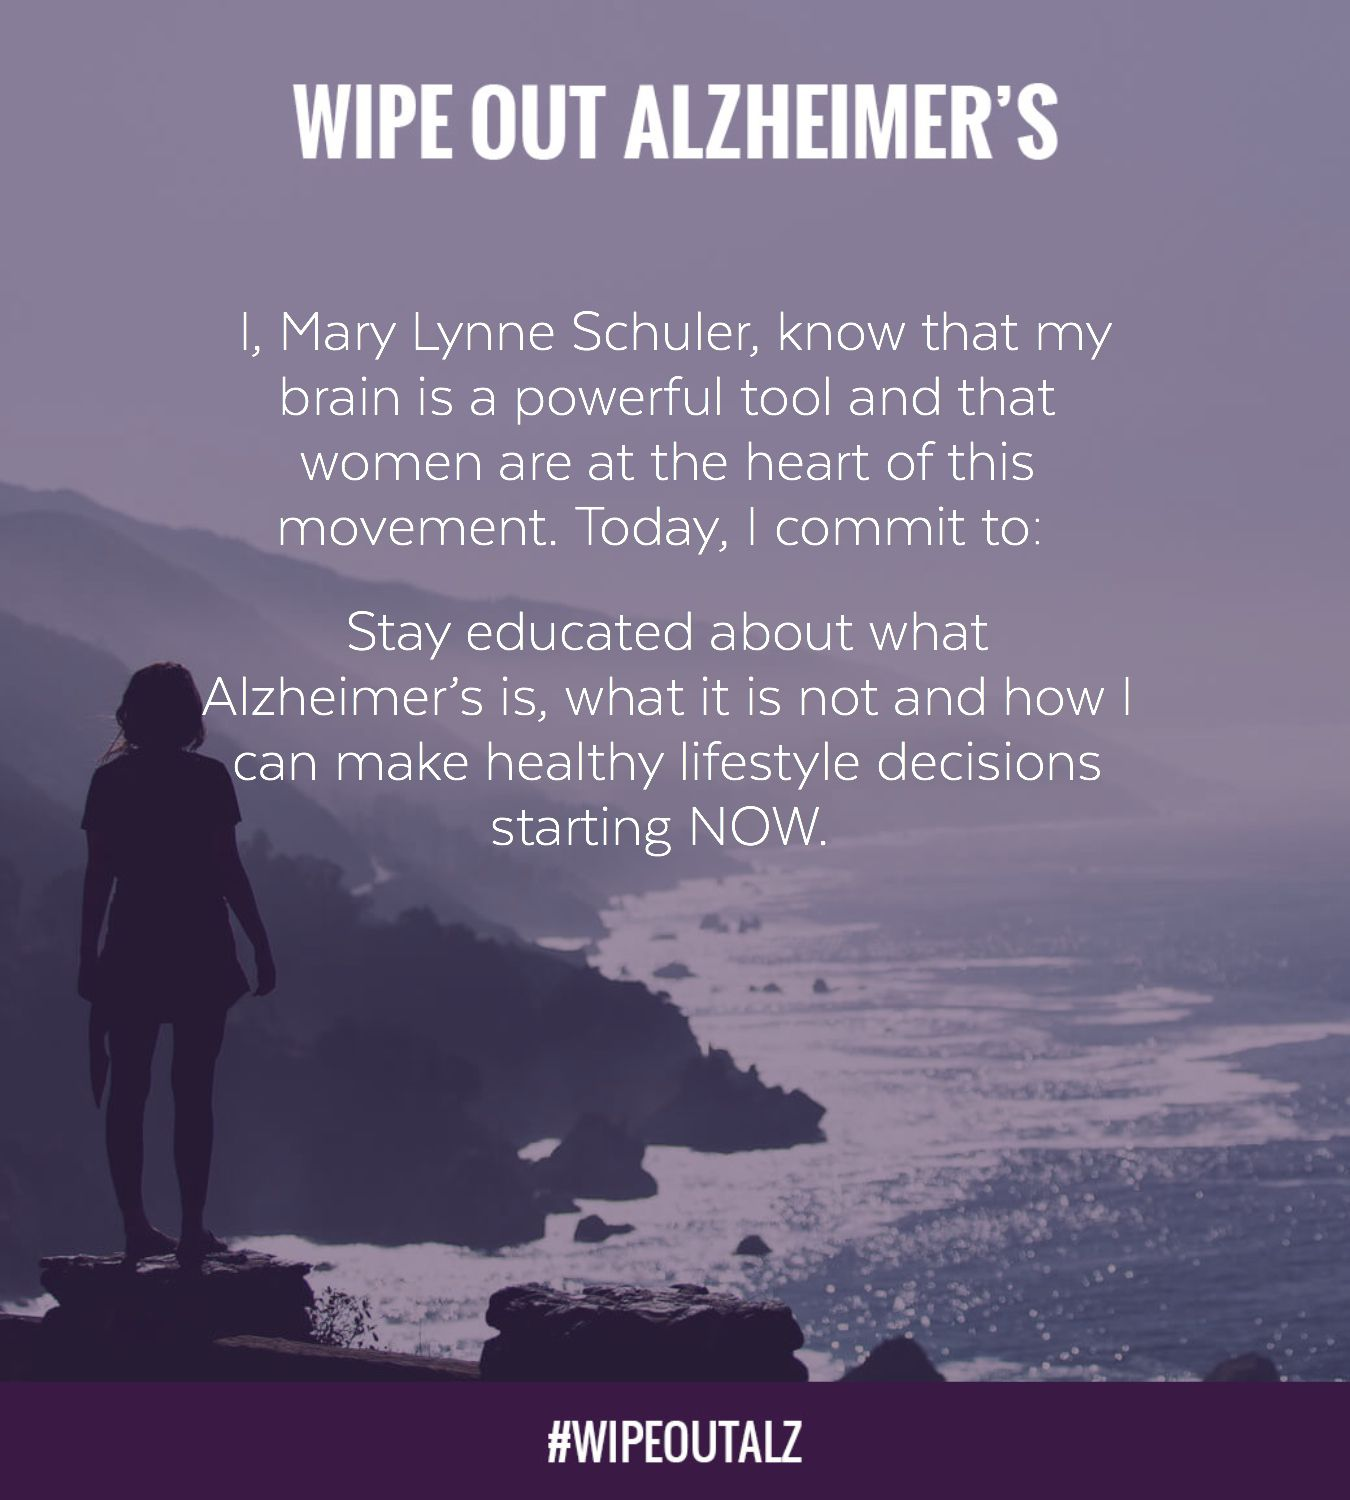 Take the pledge to Wipe Out Alzheimer's NOW